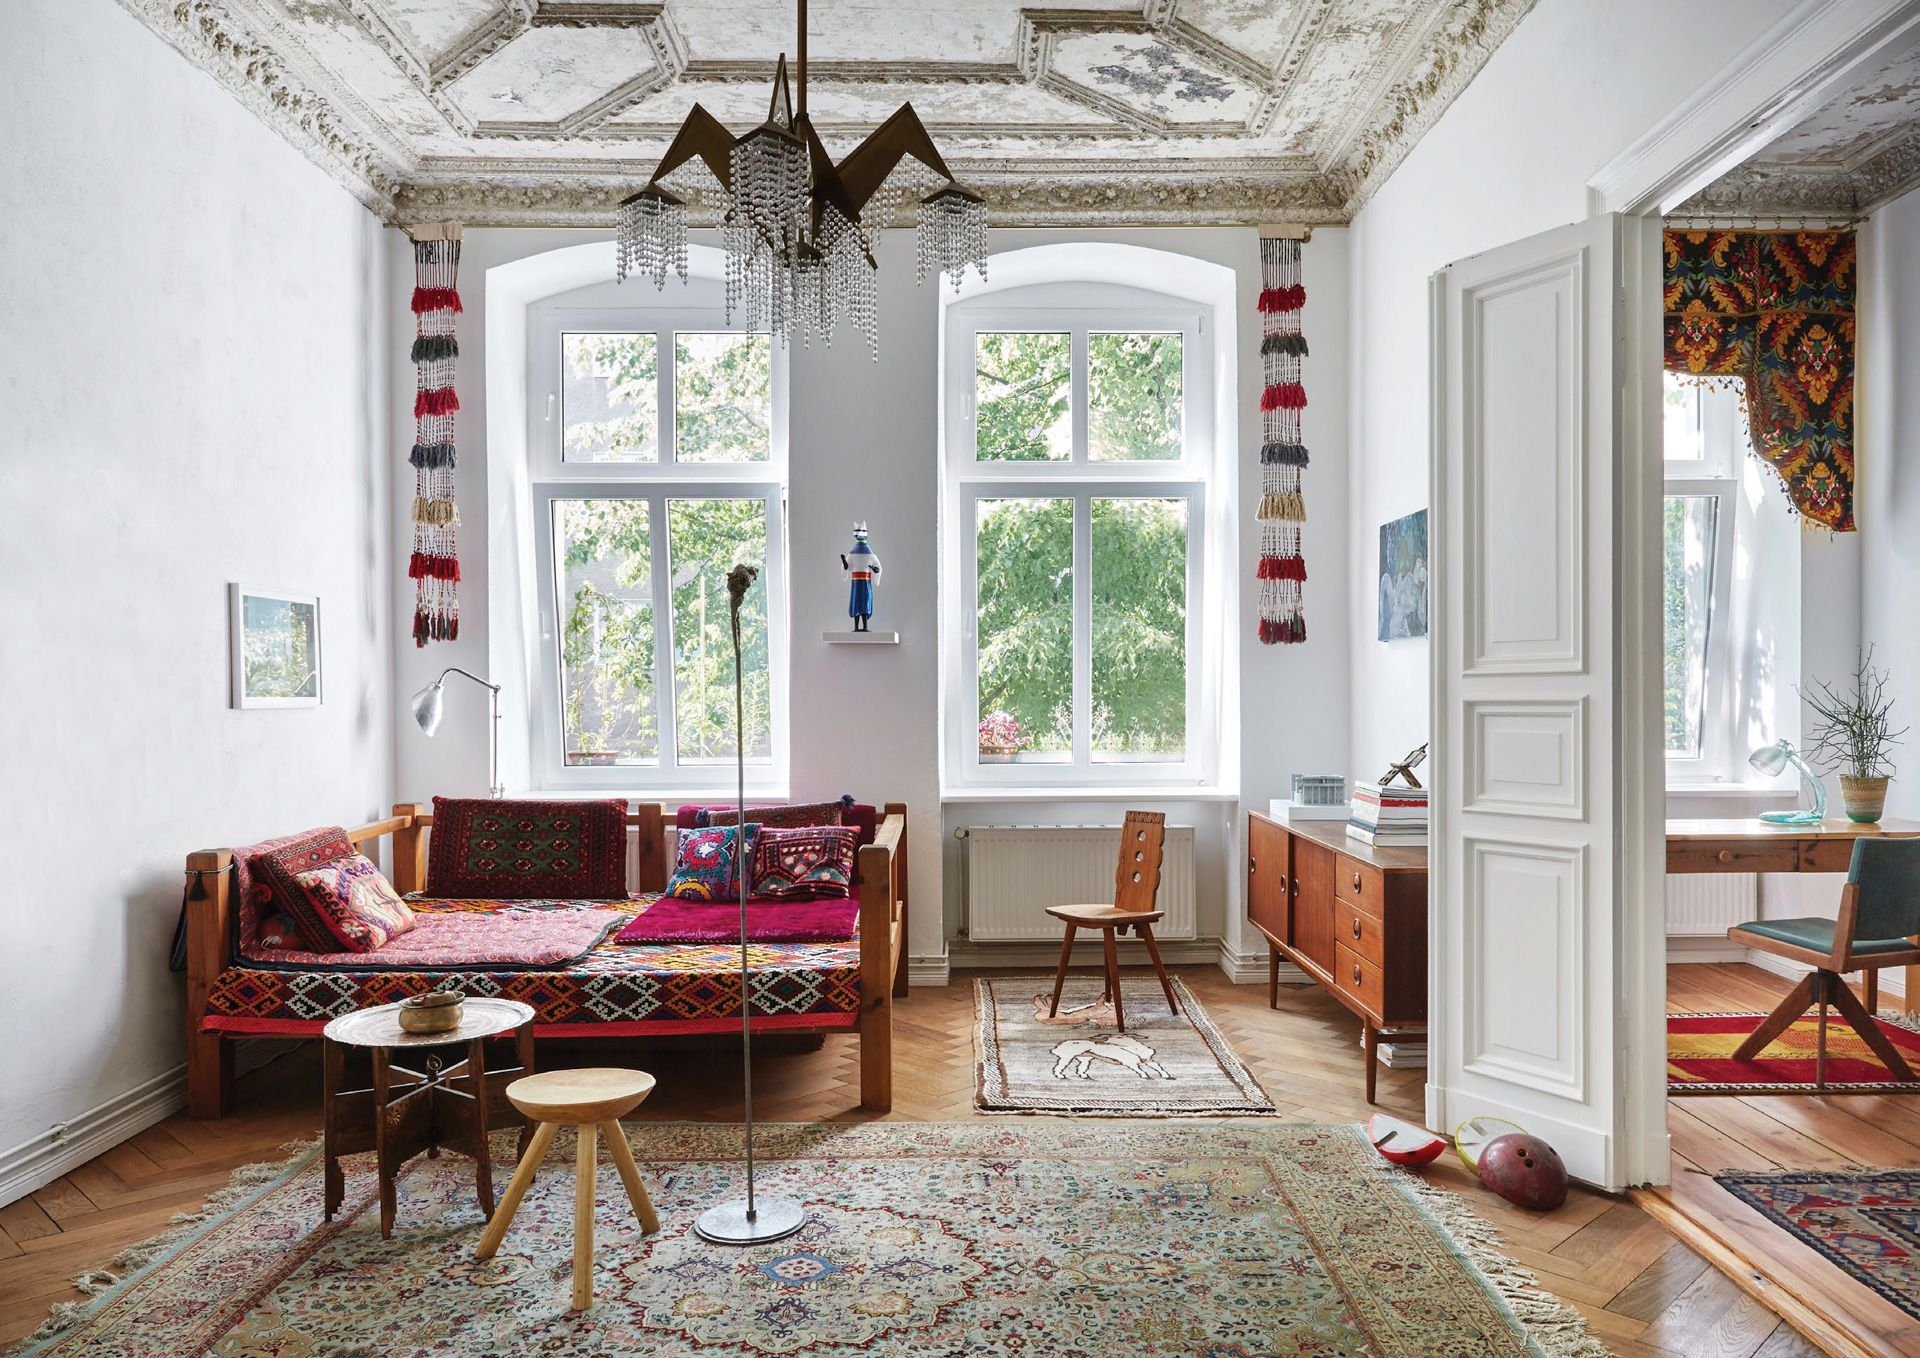 Home Tour: Eclectic Folklore Accents Bring This Industrial-Era House In Berlin To Life